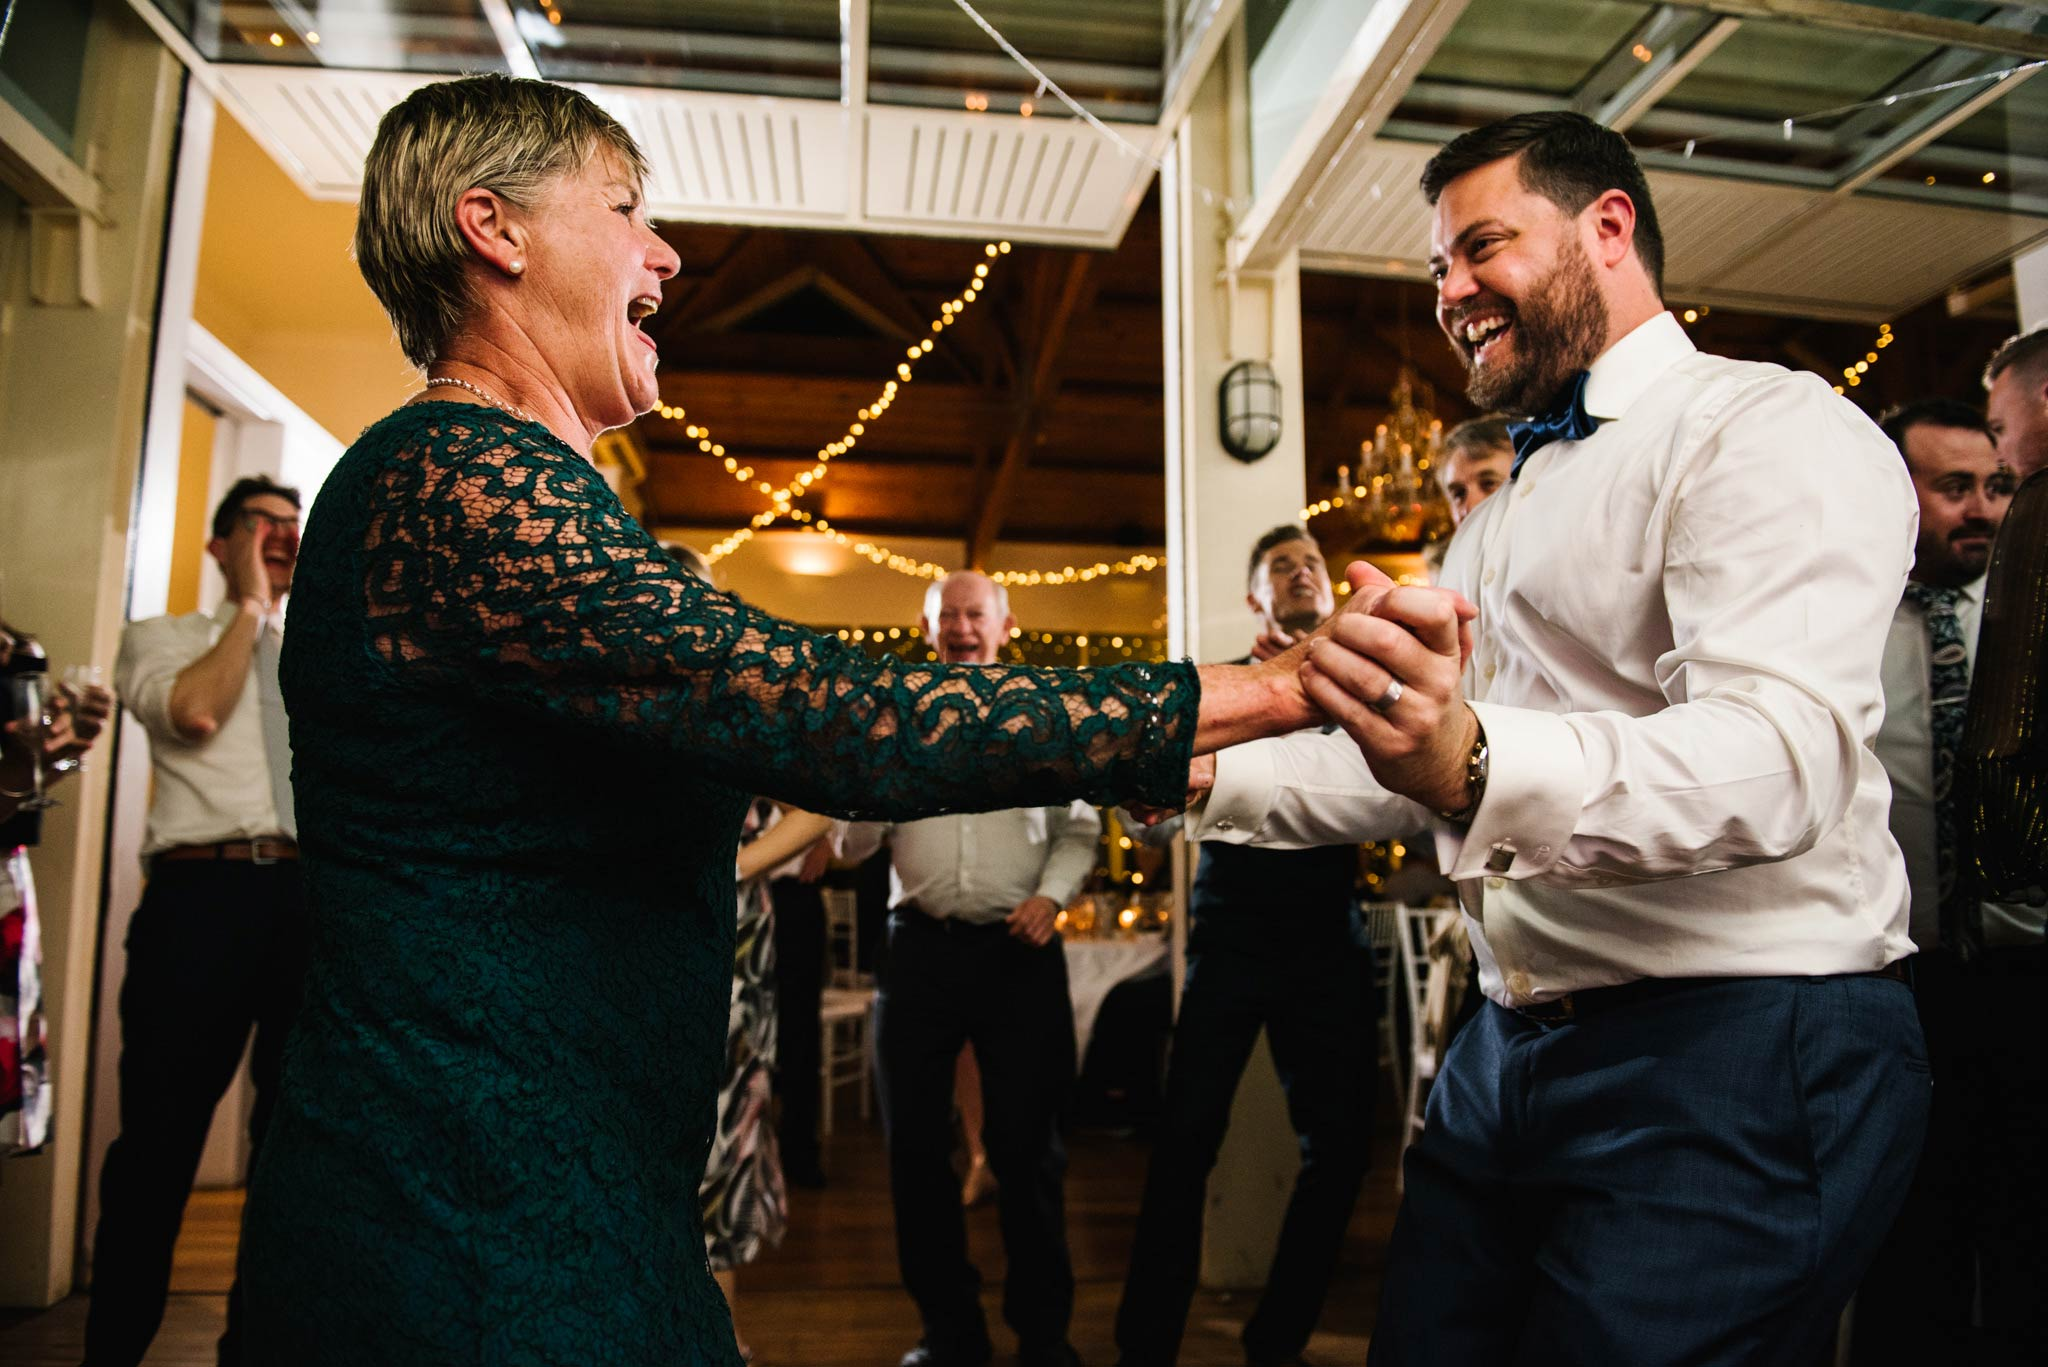 Mother and groom dancing together with guests watching in the background